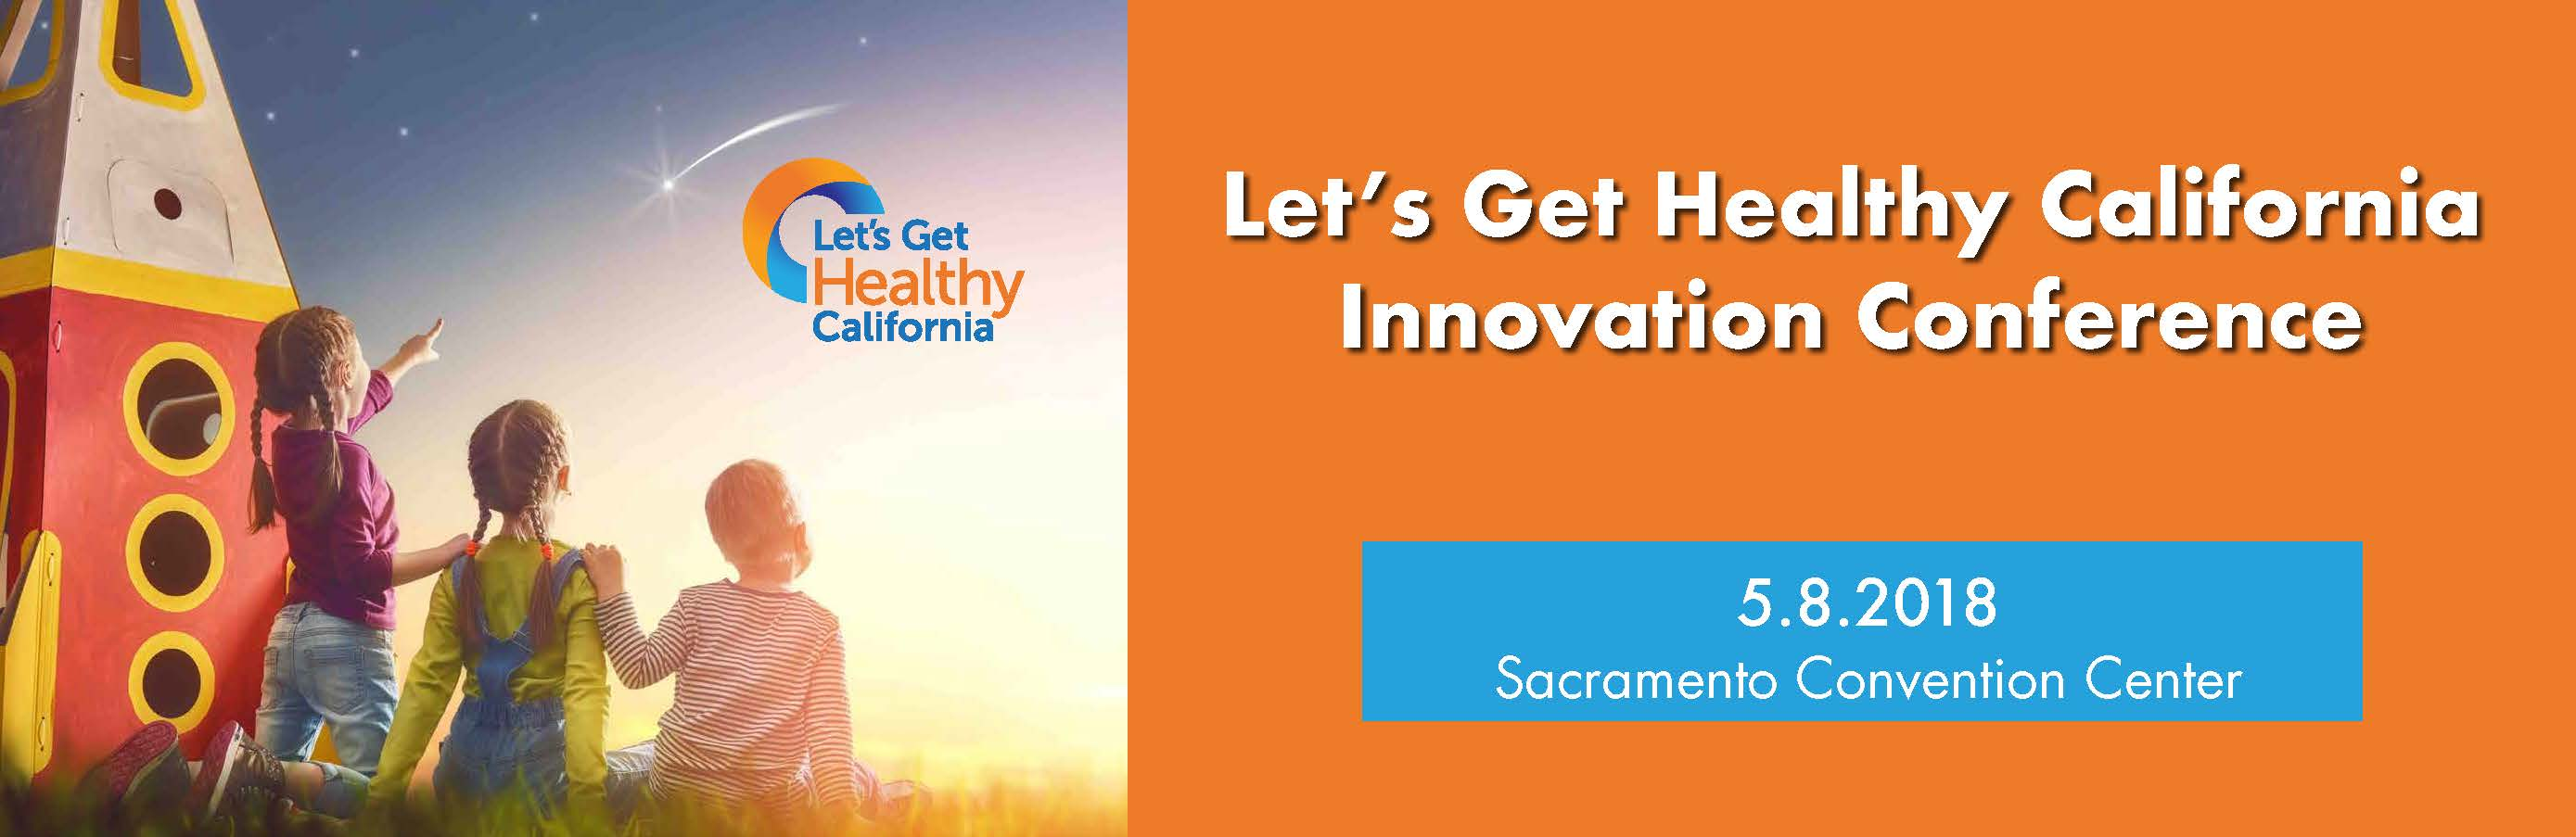 Let's Get Healthy CA - Innovation Conference